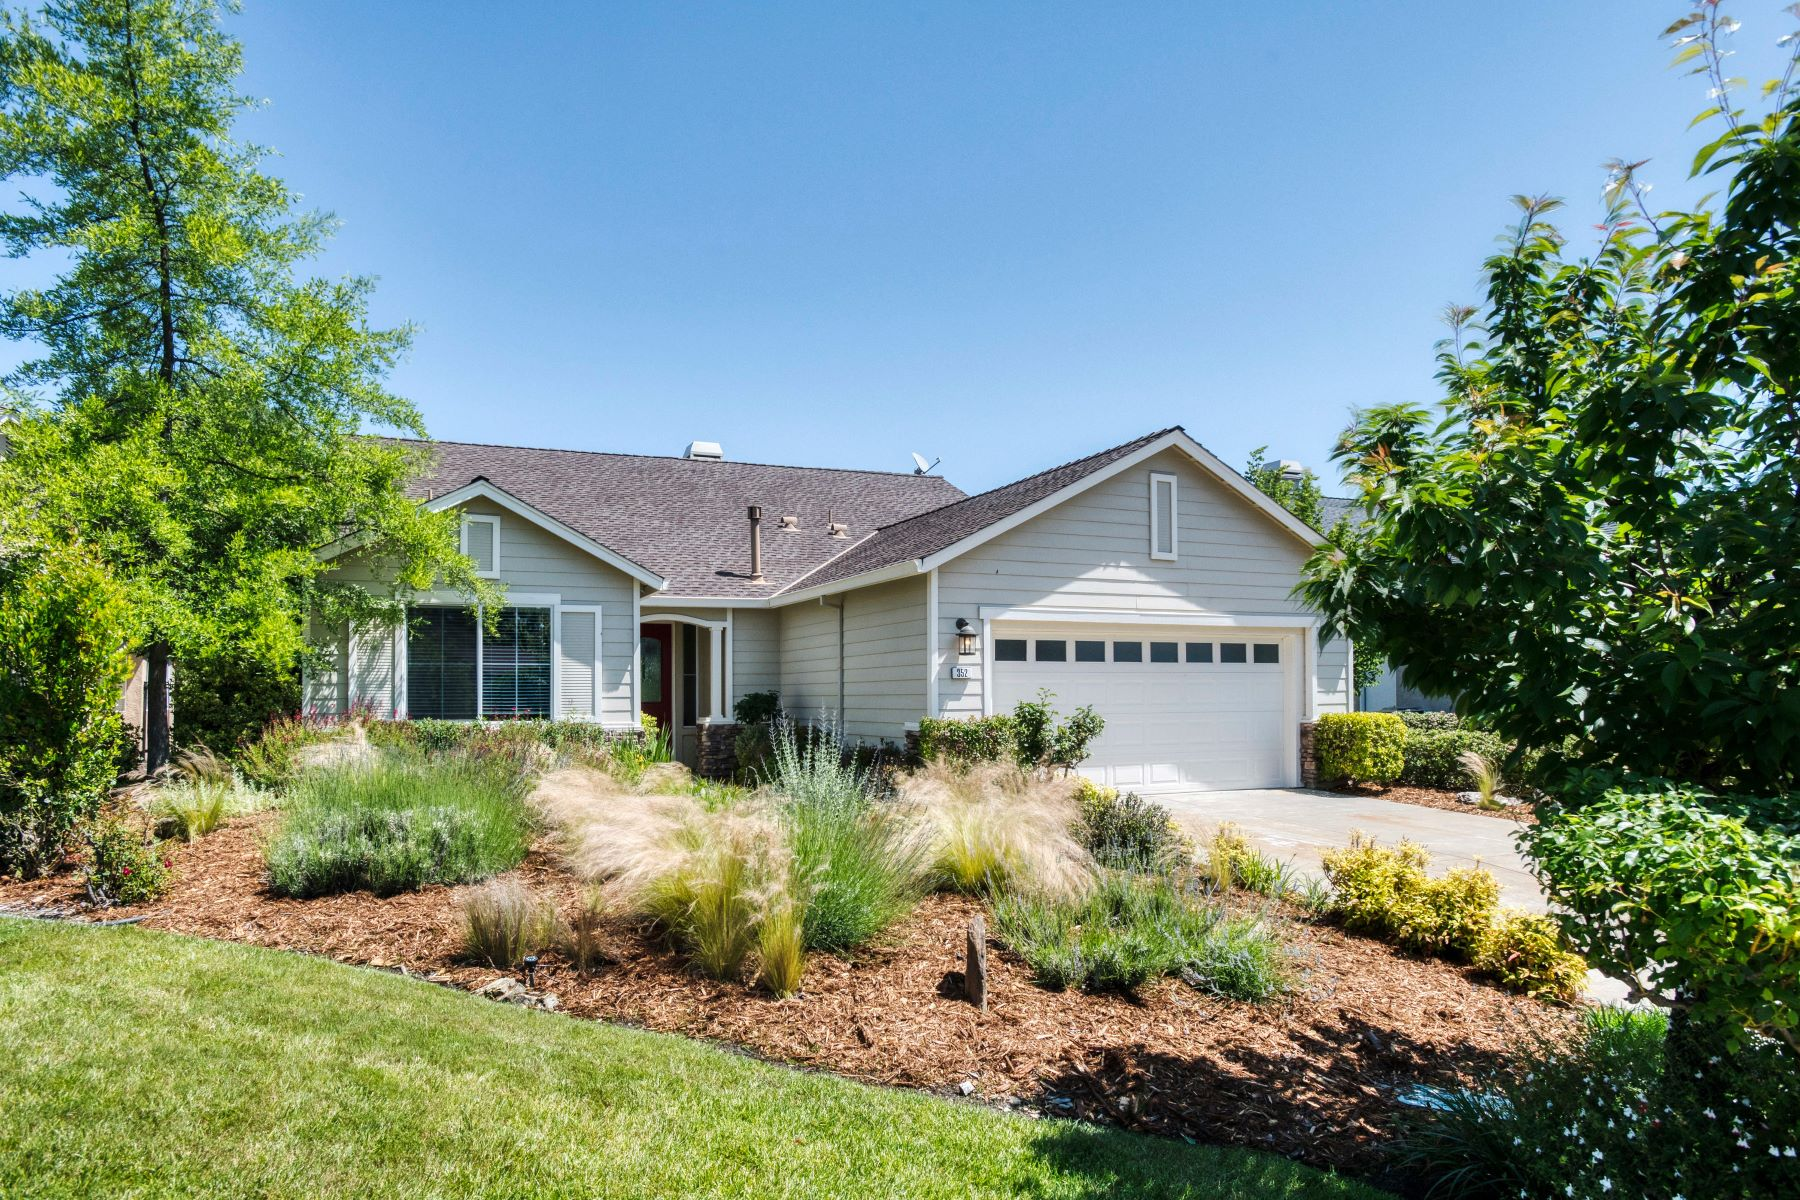 Single Family Homes for Sale at Contemporary Home In Premier, Private Setting 352 Mitchell Lake Lane Copperopolis, California 95228 United States